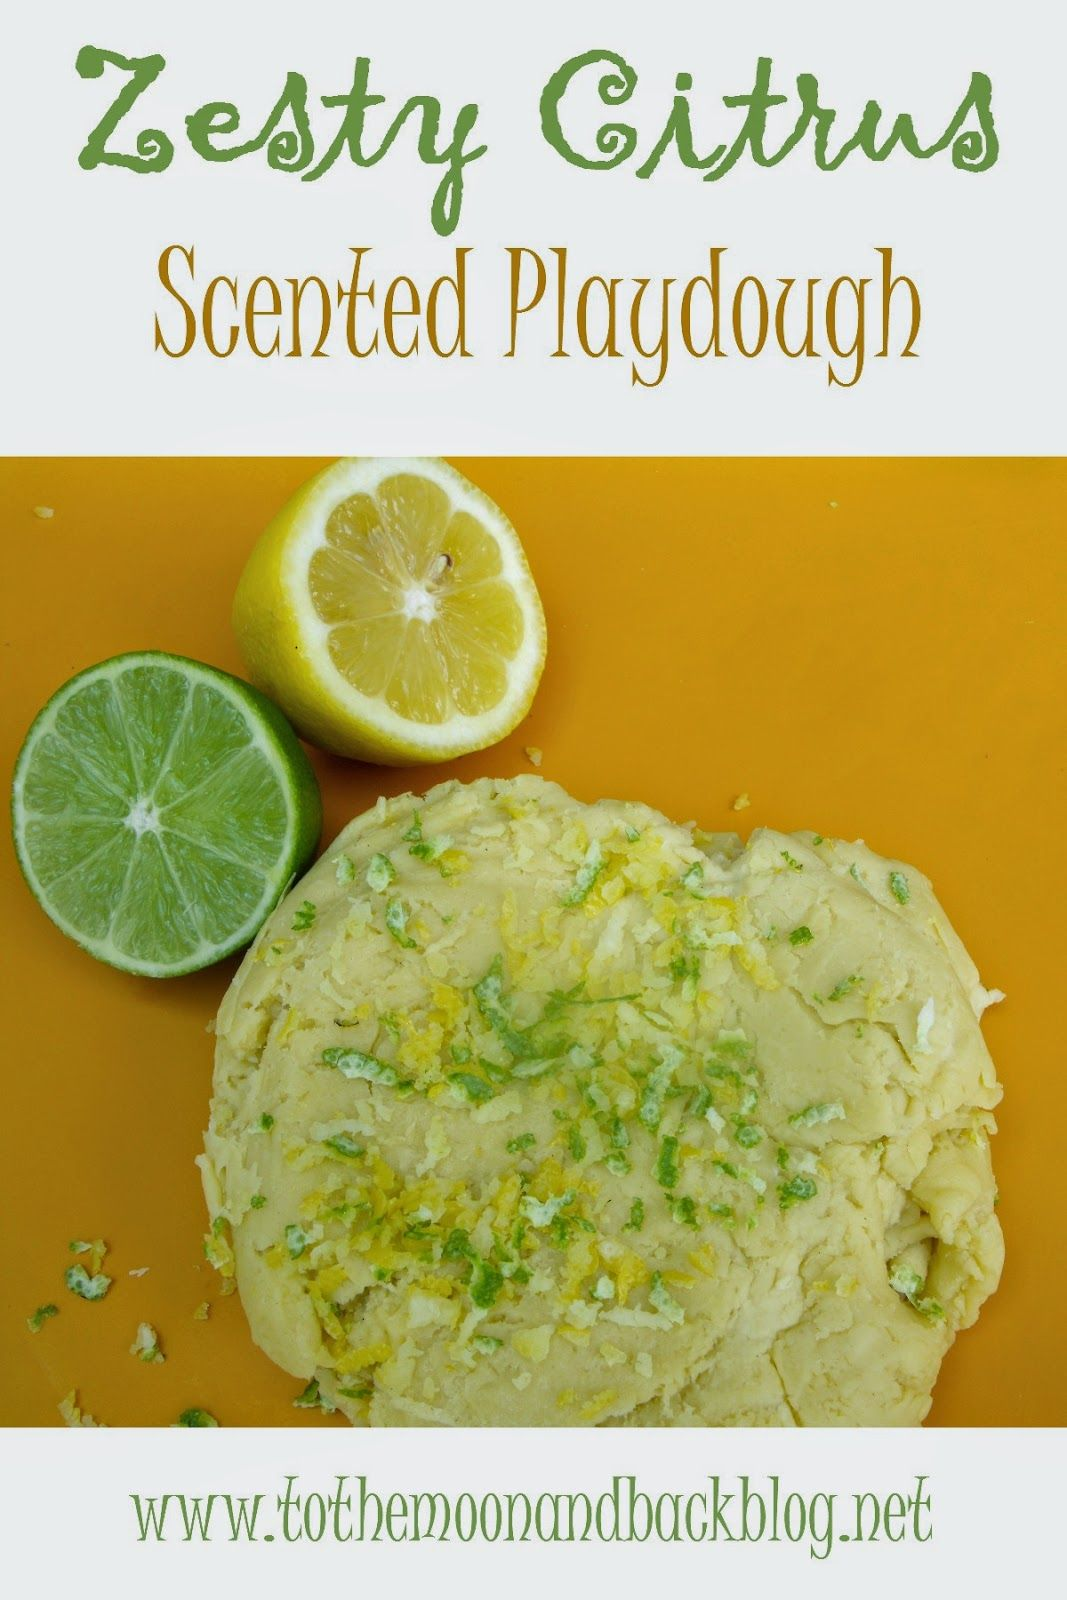 In the ABCs of Scented Playdough series, Z is for Zesty Citrus. With orange juice, lemon zest and lime zest.